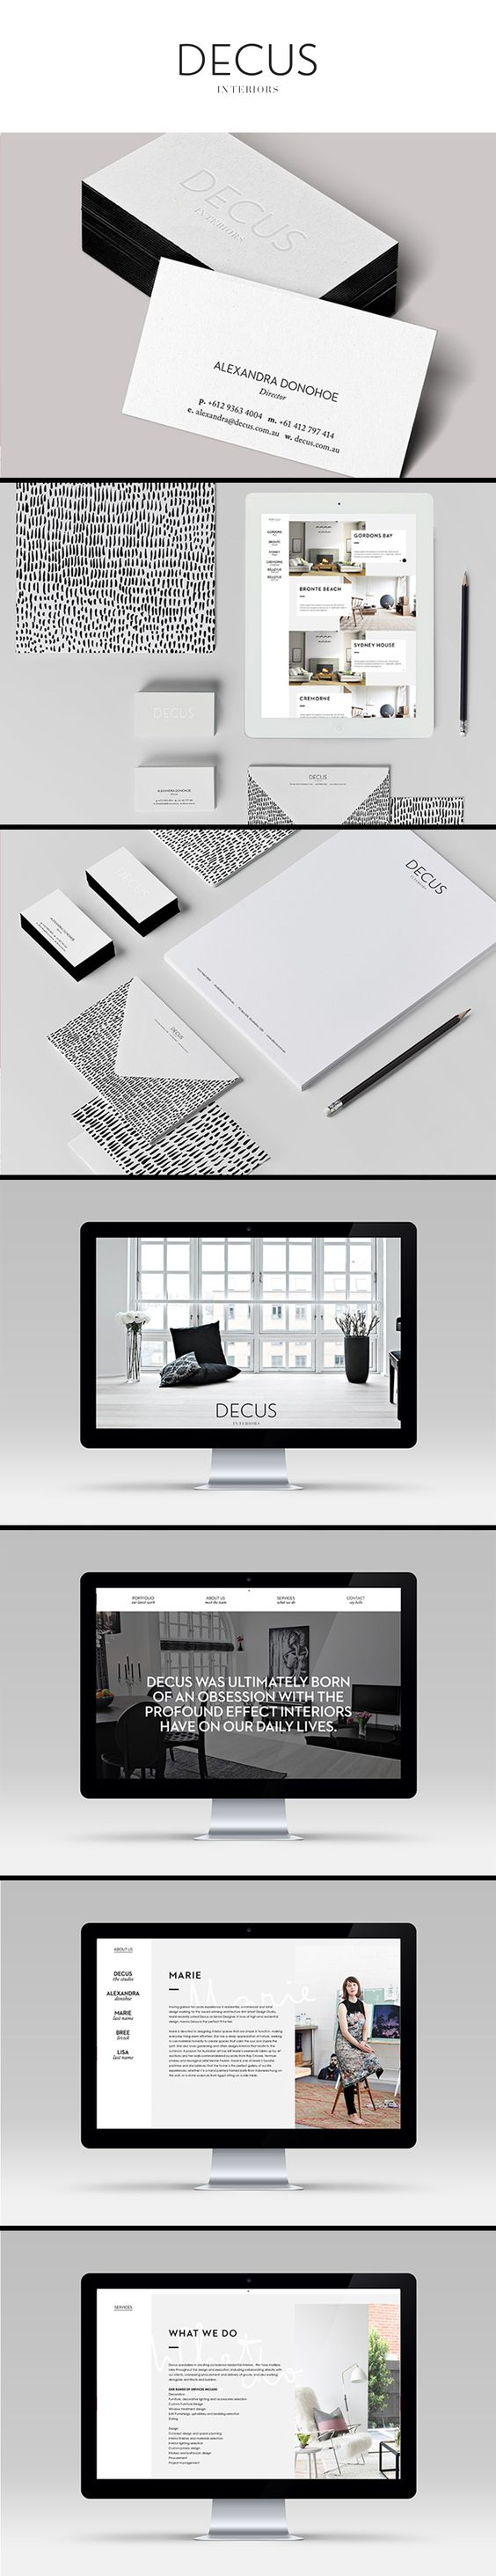 Decus interiors branding branding design and branding agency for Interior design branding agency